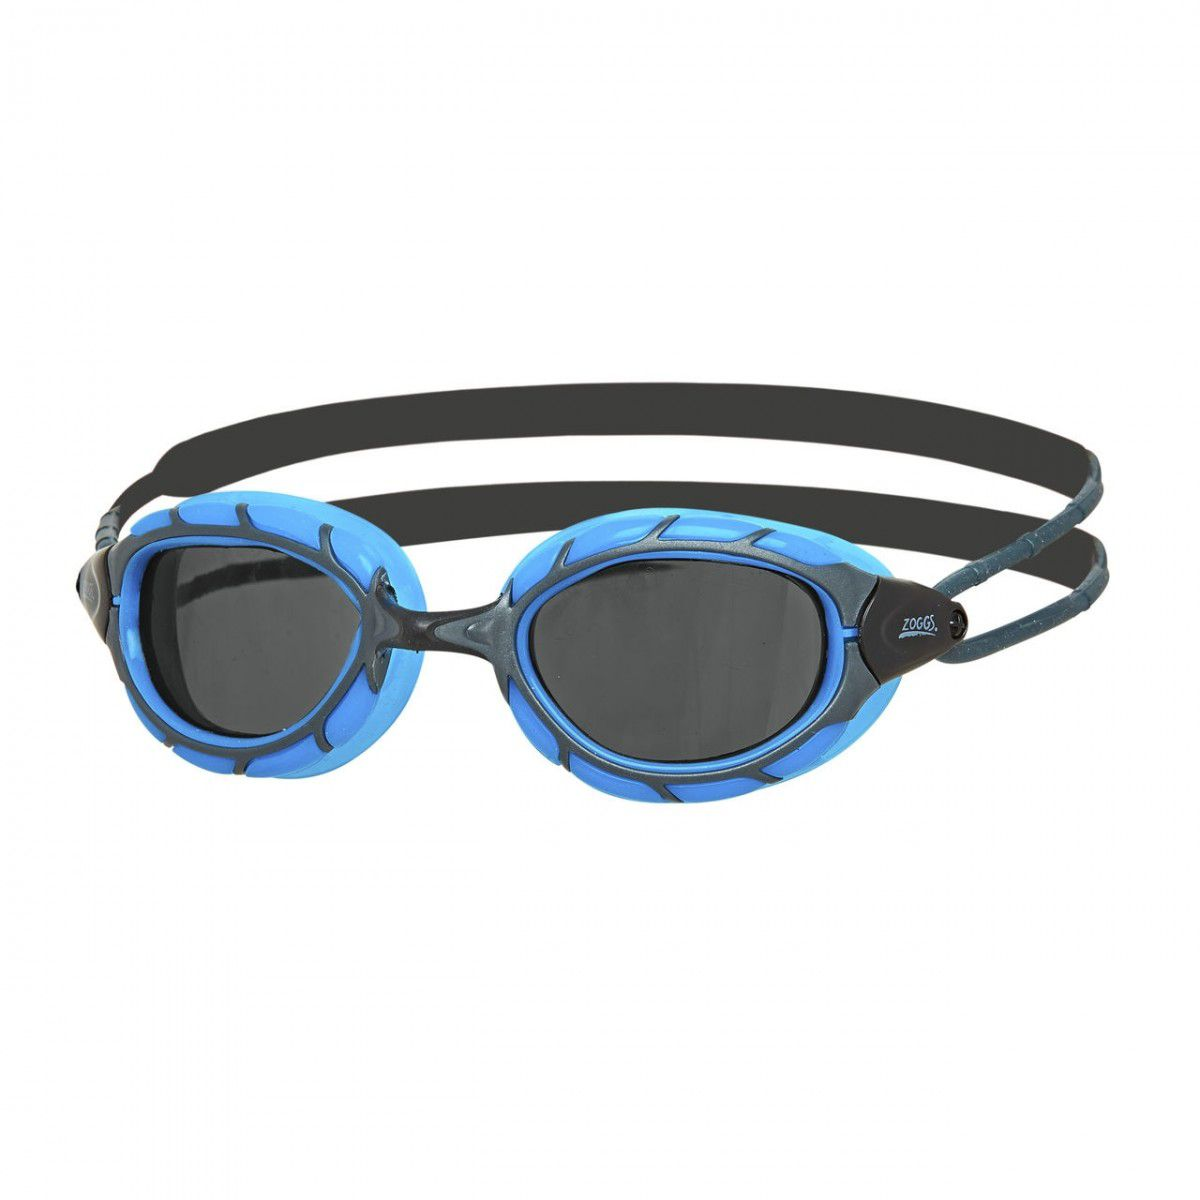 Predator Swimming Goggles